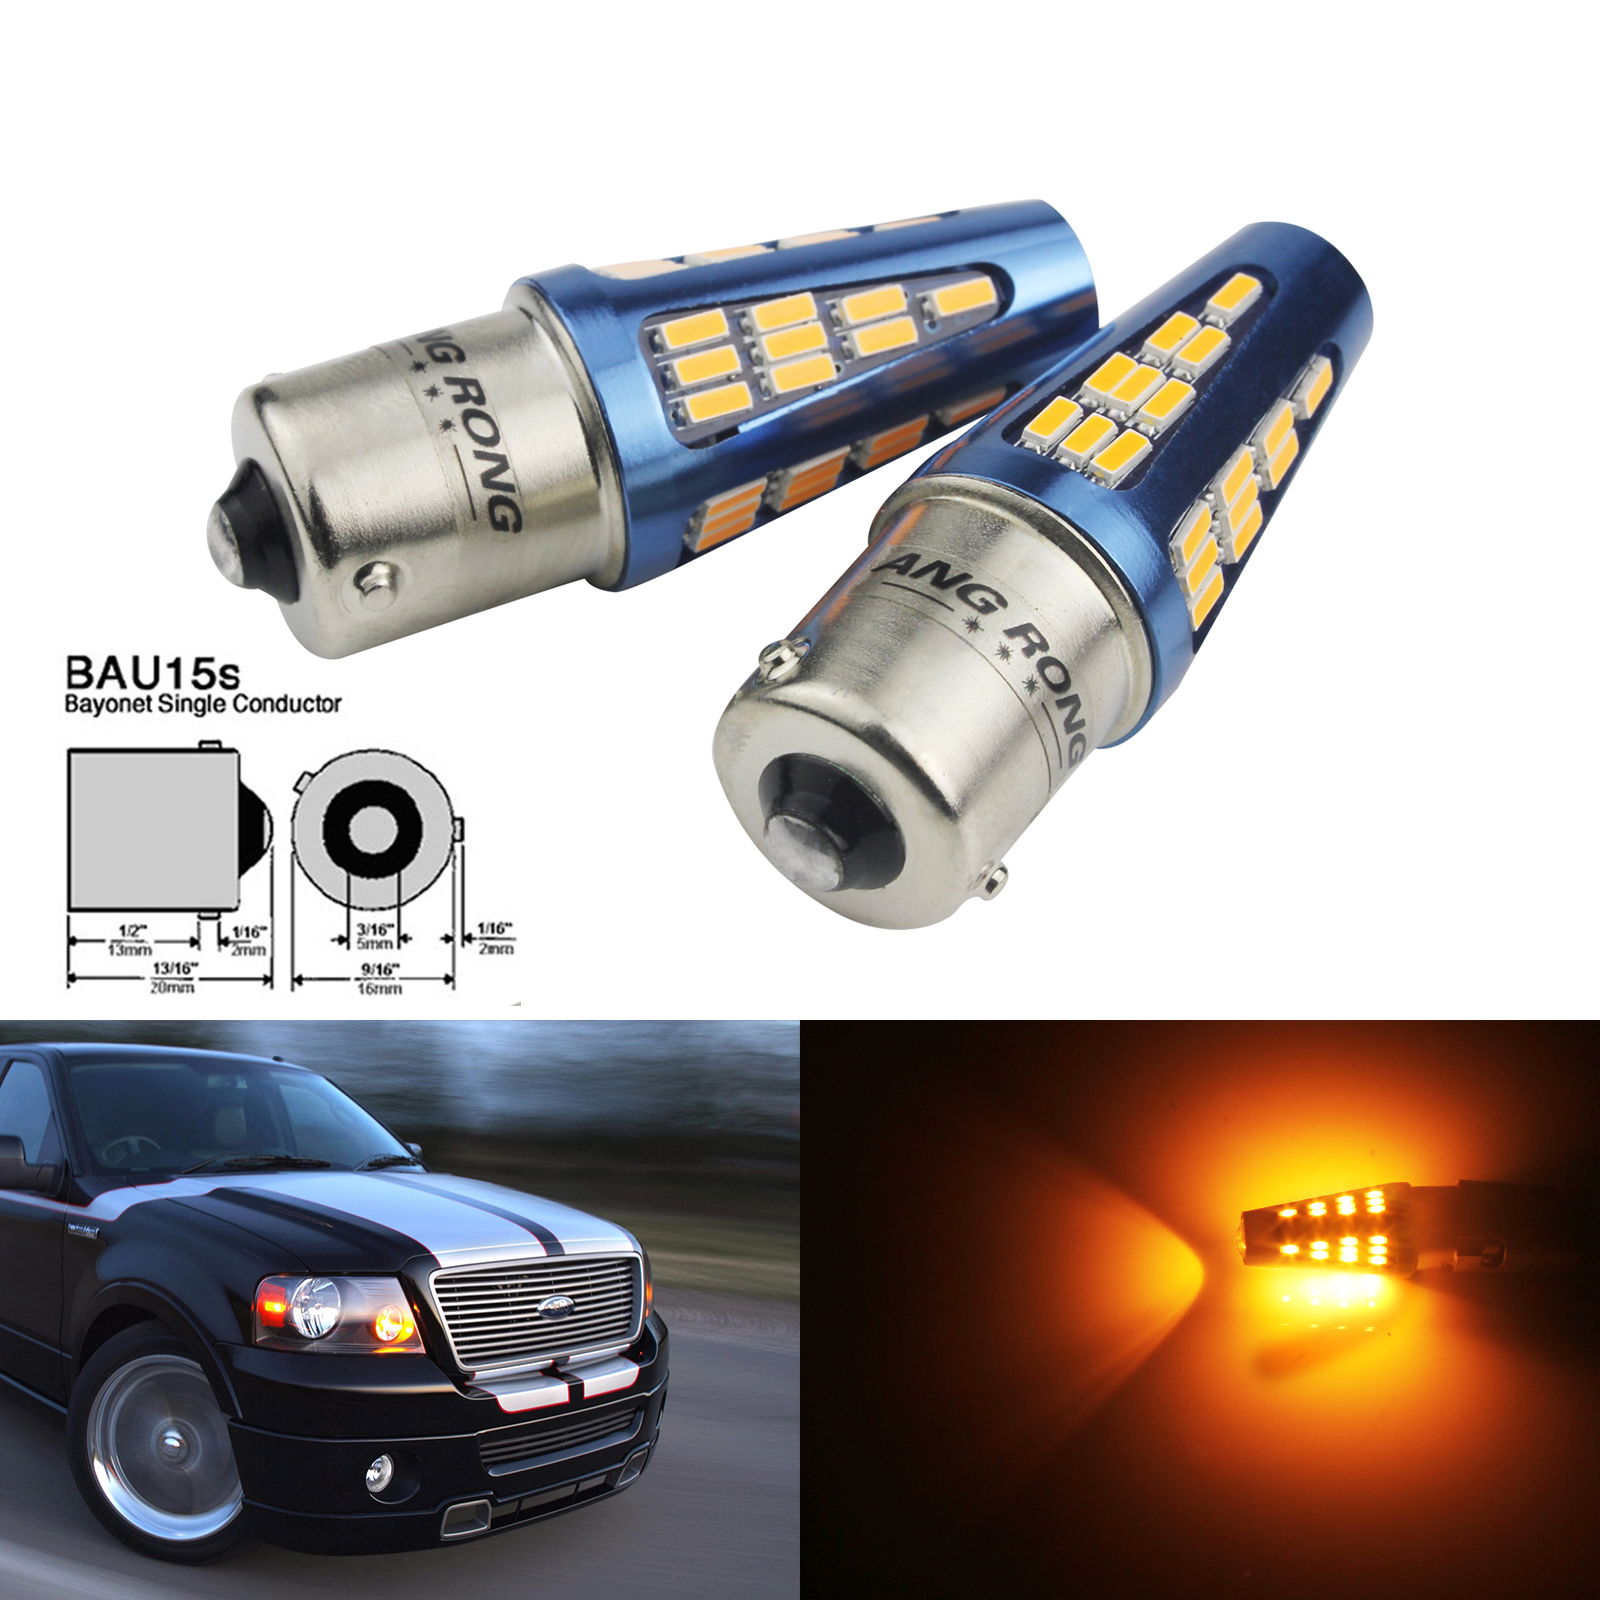 ANGRONG 2x 48 SMD <font><b>LED</b></font> <font><b>PY21W</b></font> BAU15S Amber <font><b>Orange</b></font> Turn Signal Front Rear Indicator Light image